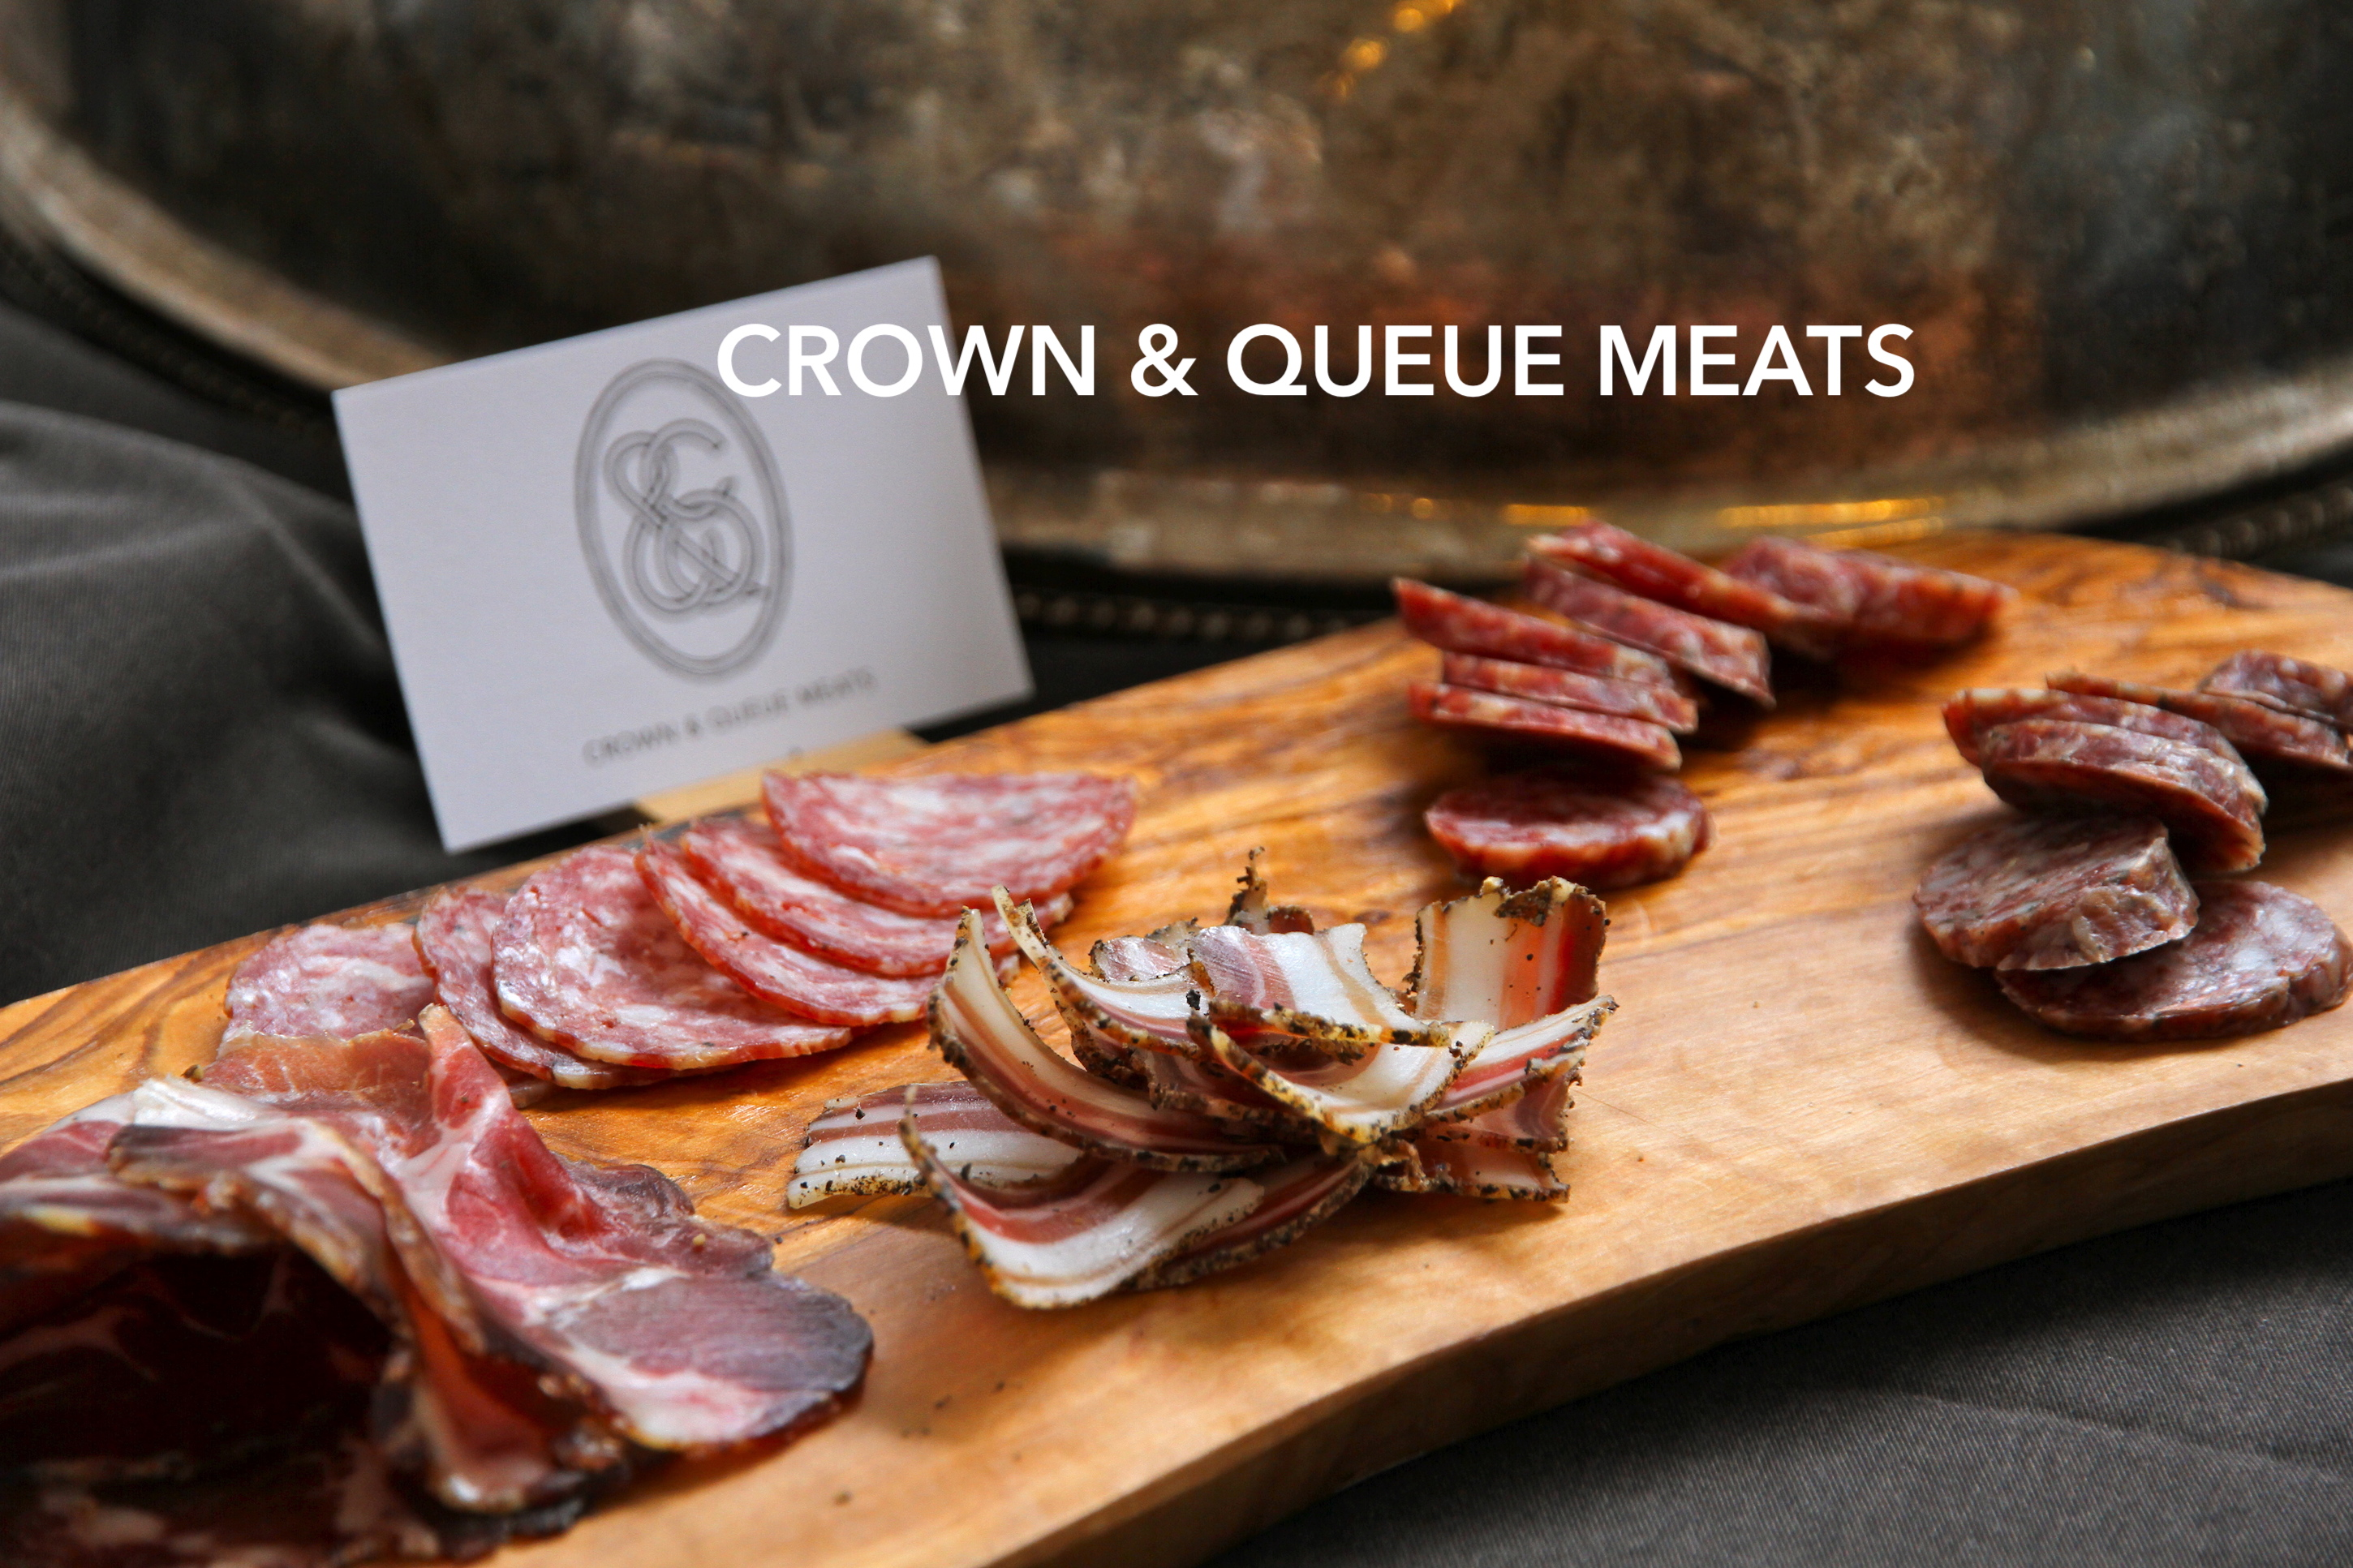 CROWN&QUEUE MEATS